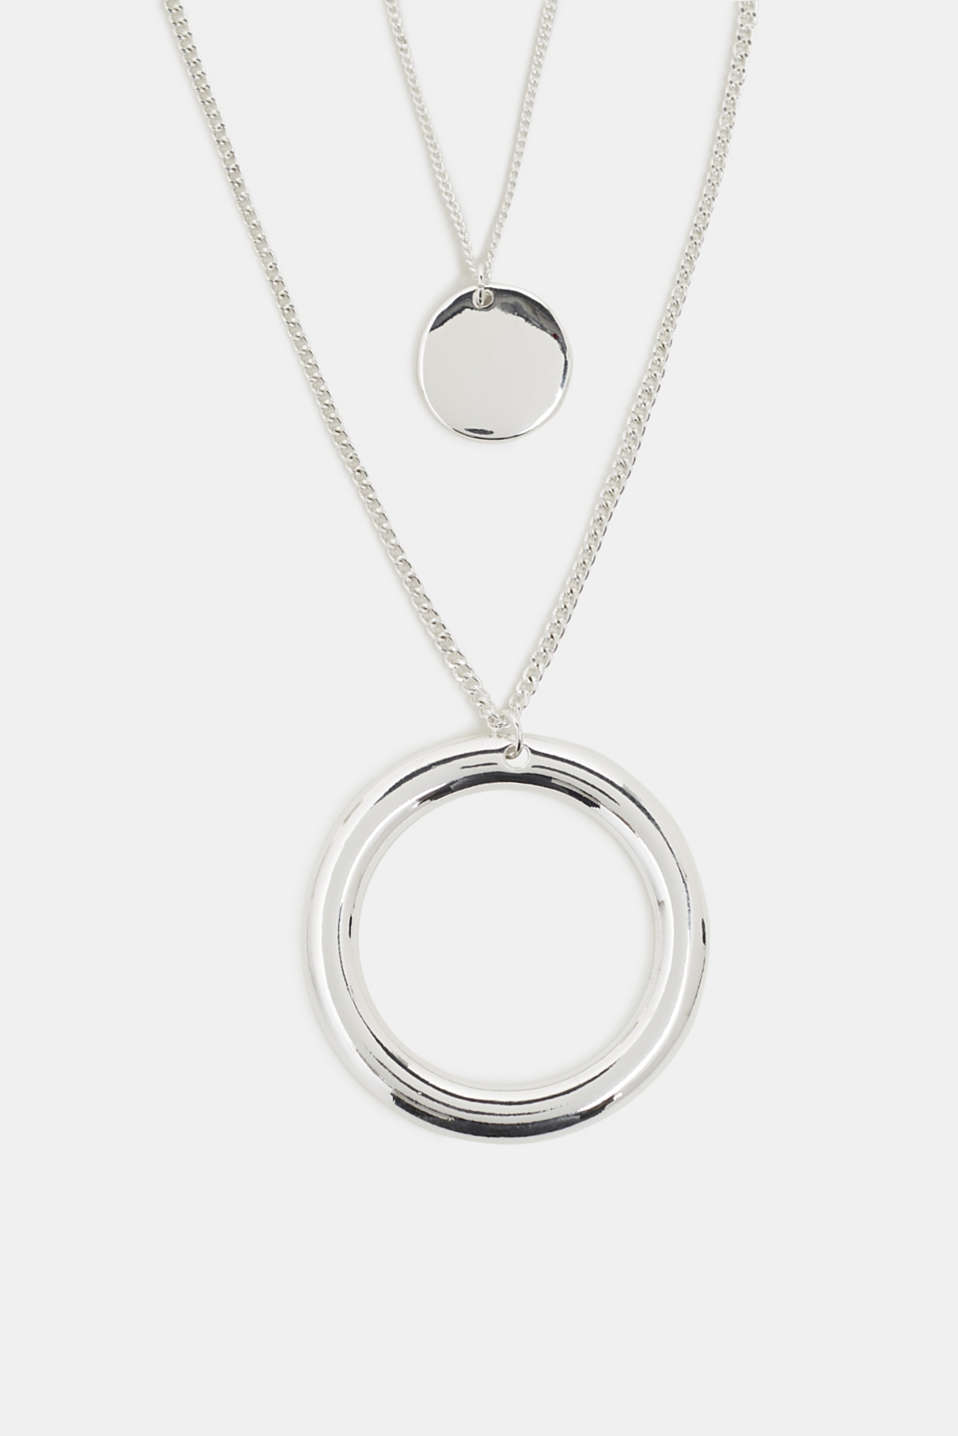 Double strand necklace with ring pendant, SILVER, detail image number 1